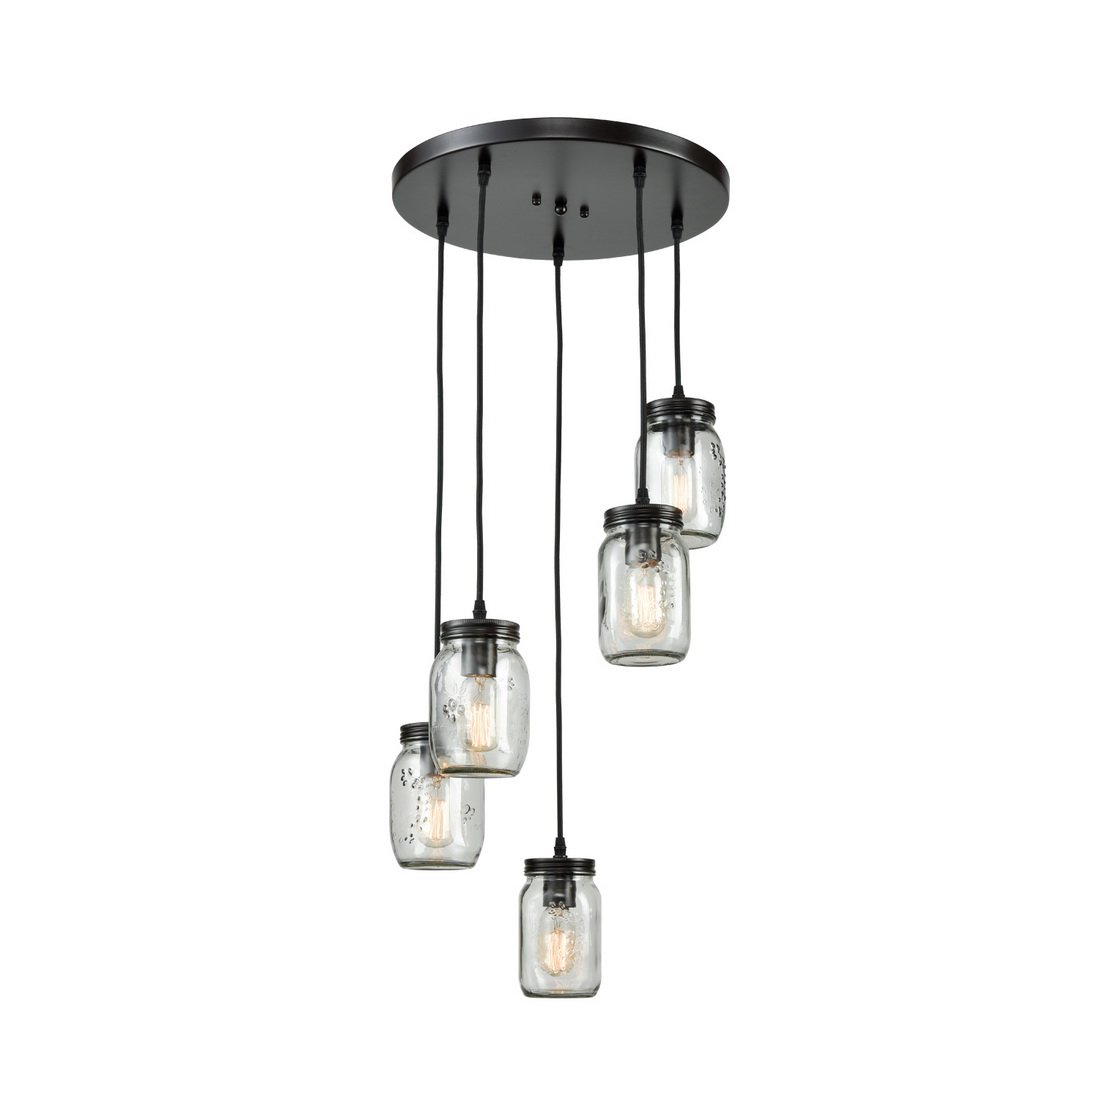 EUL Mason Jar Kitchen Island Lighting 5-Light Glass Jar Chandelier Pendant Lighting Fixture Oil Rubbed Bronze